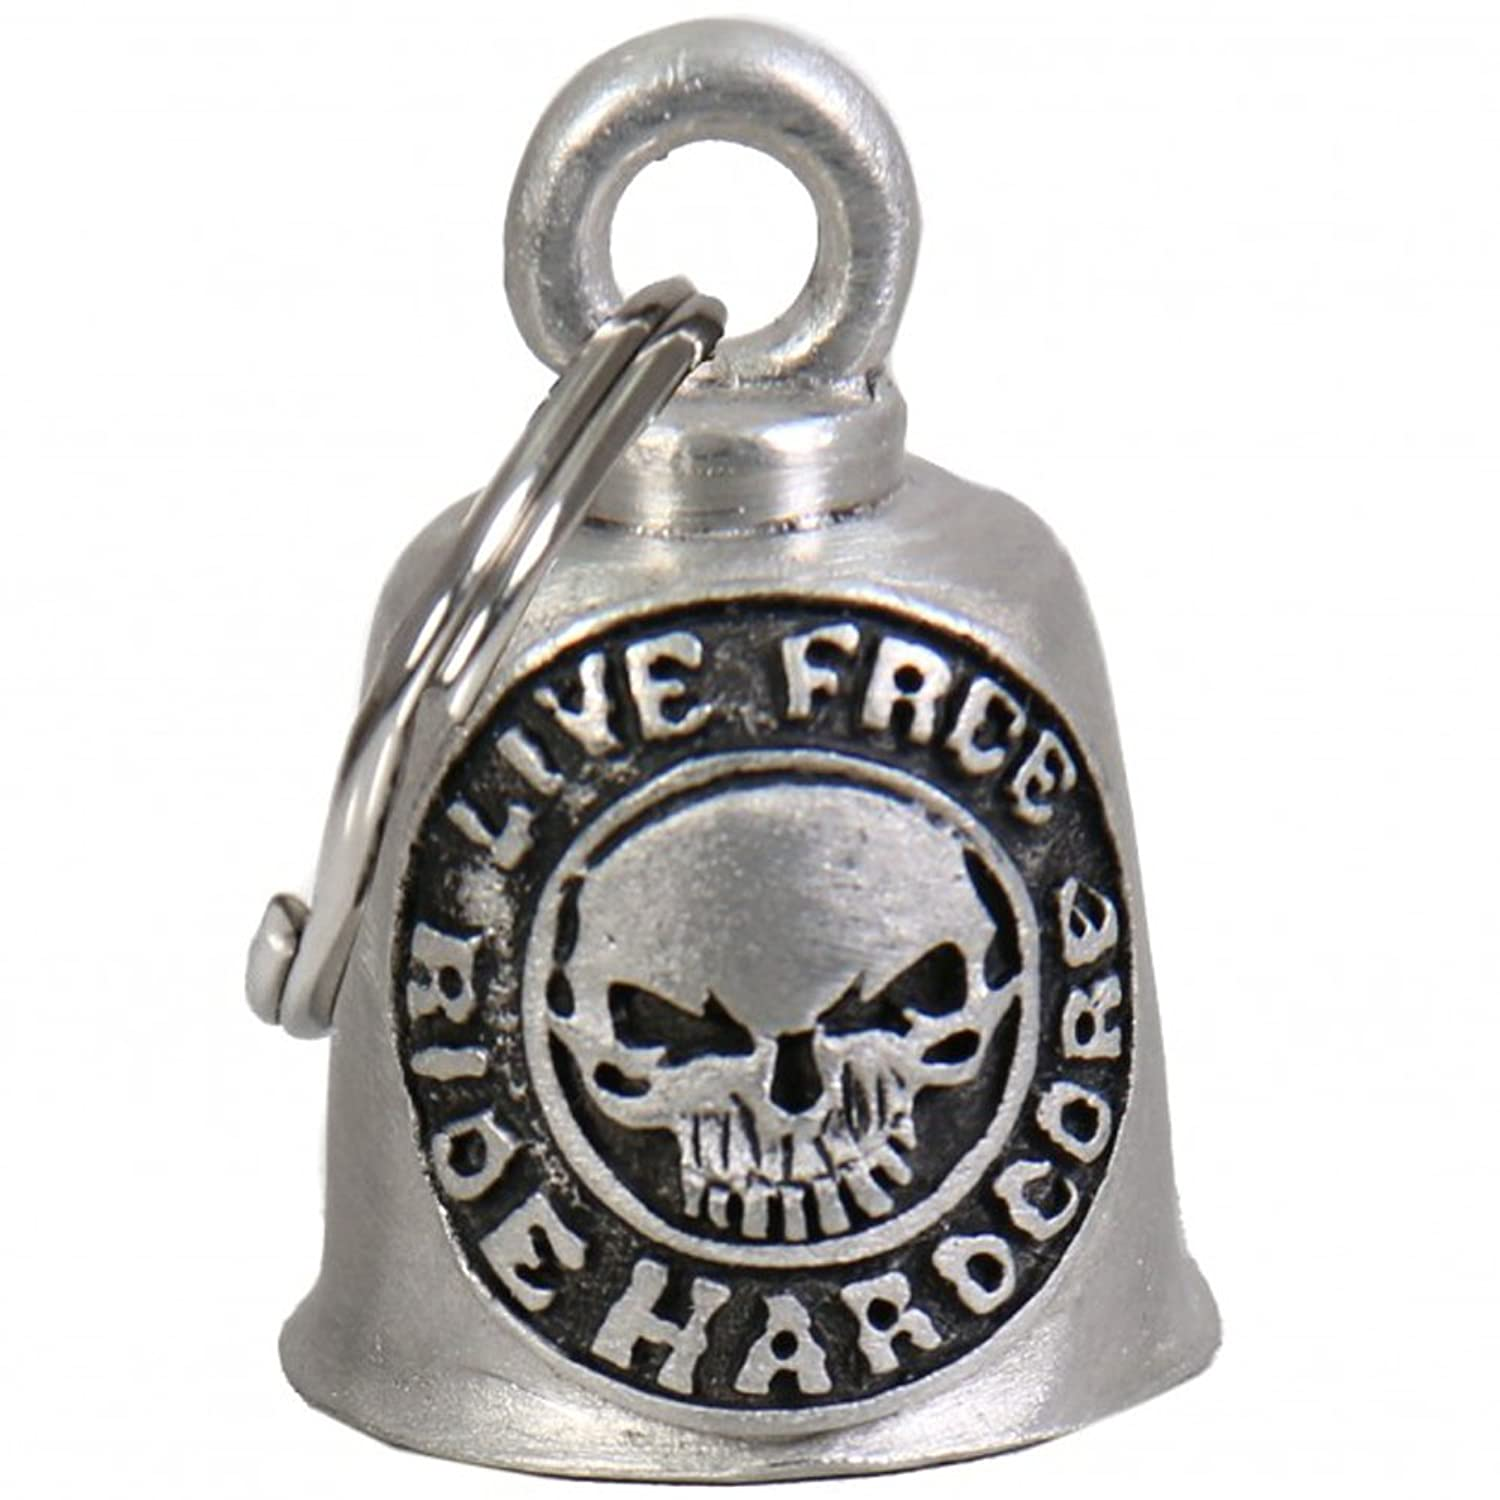 "Gremlin Bell - LIVE FREE RIDE HARDCORE - 1"" x 1.5"" - Made In USA"